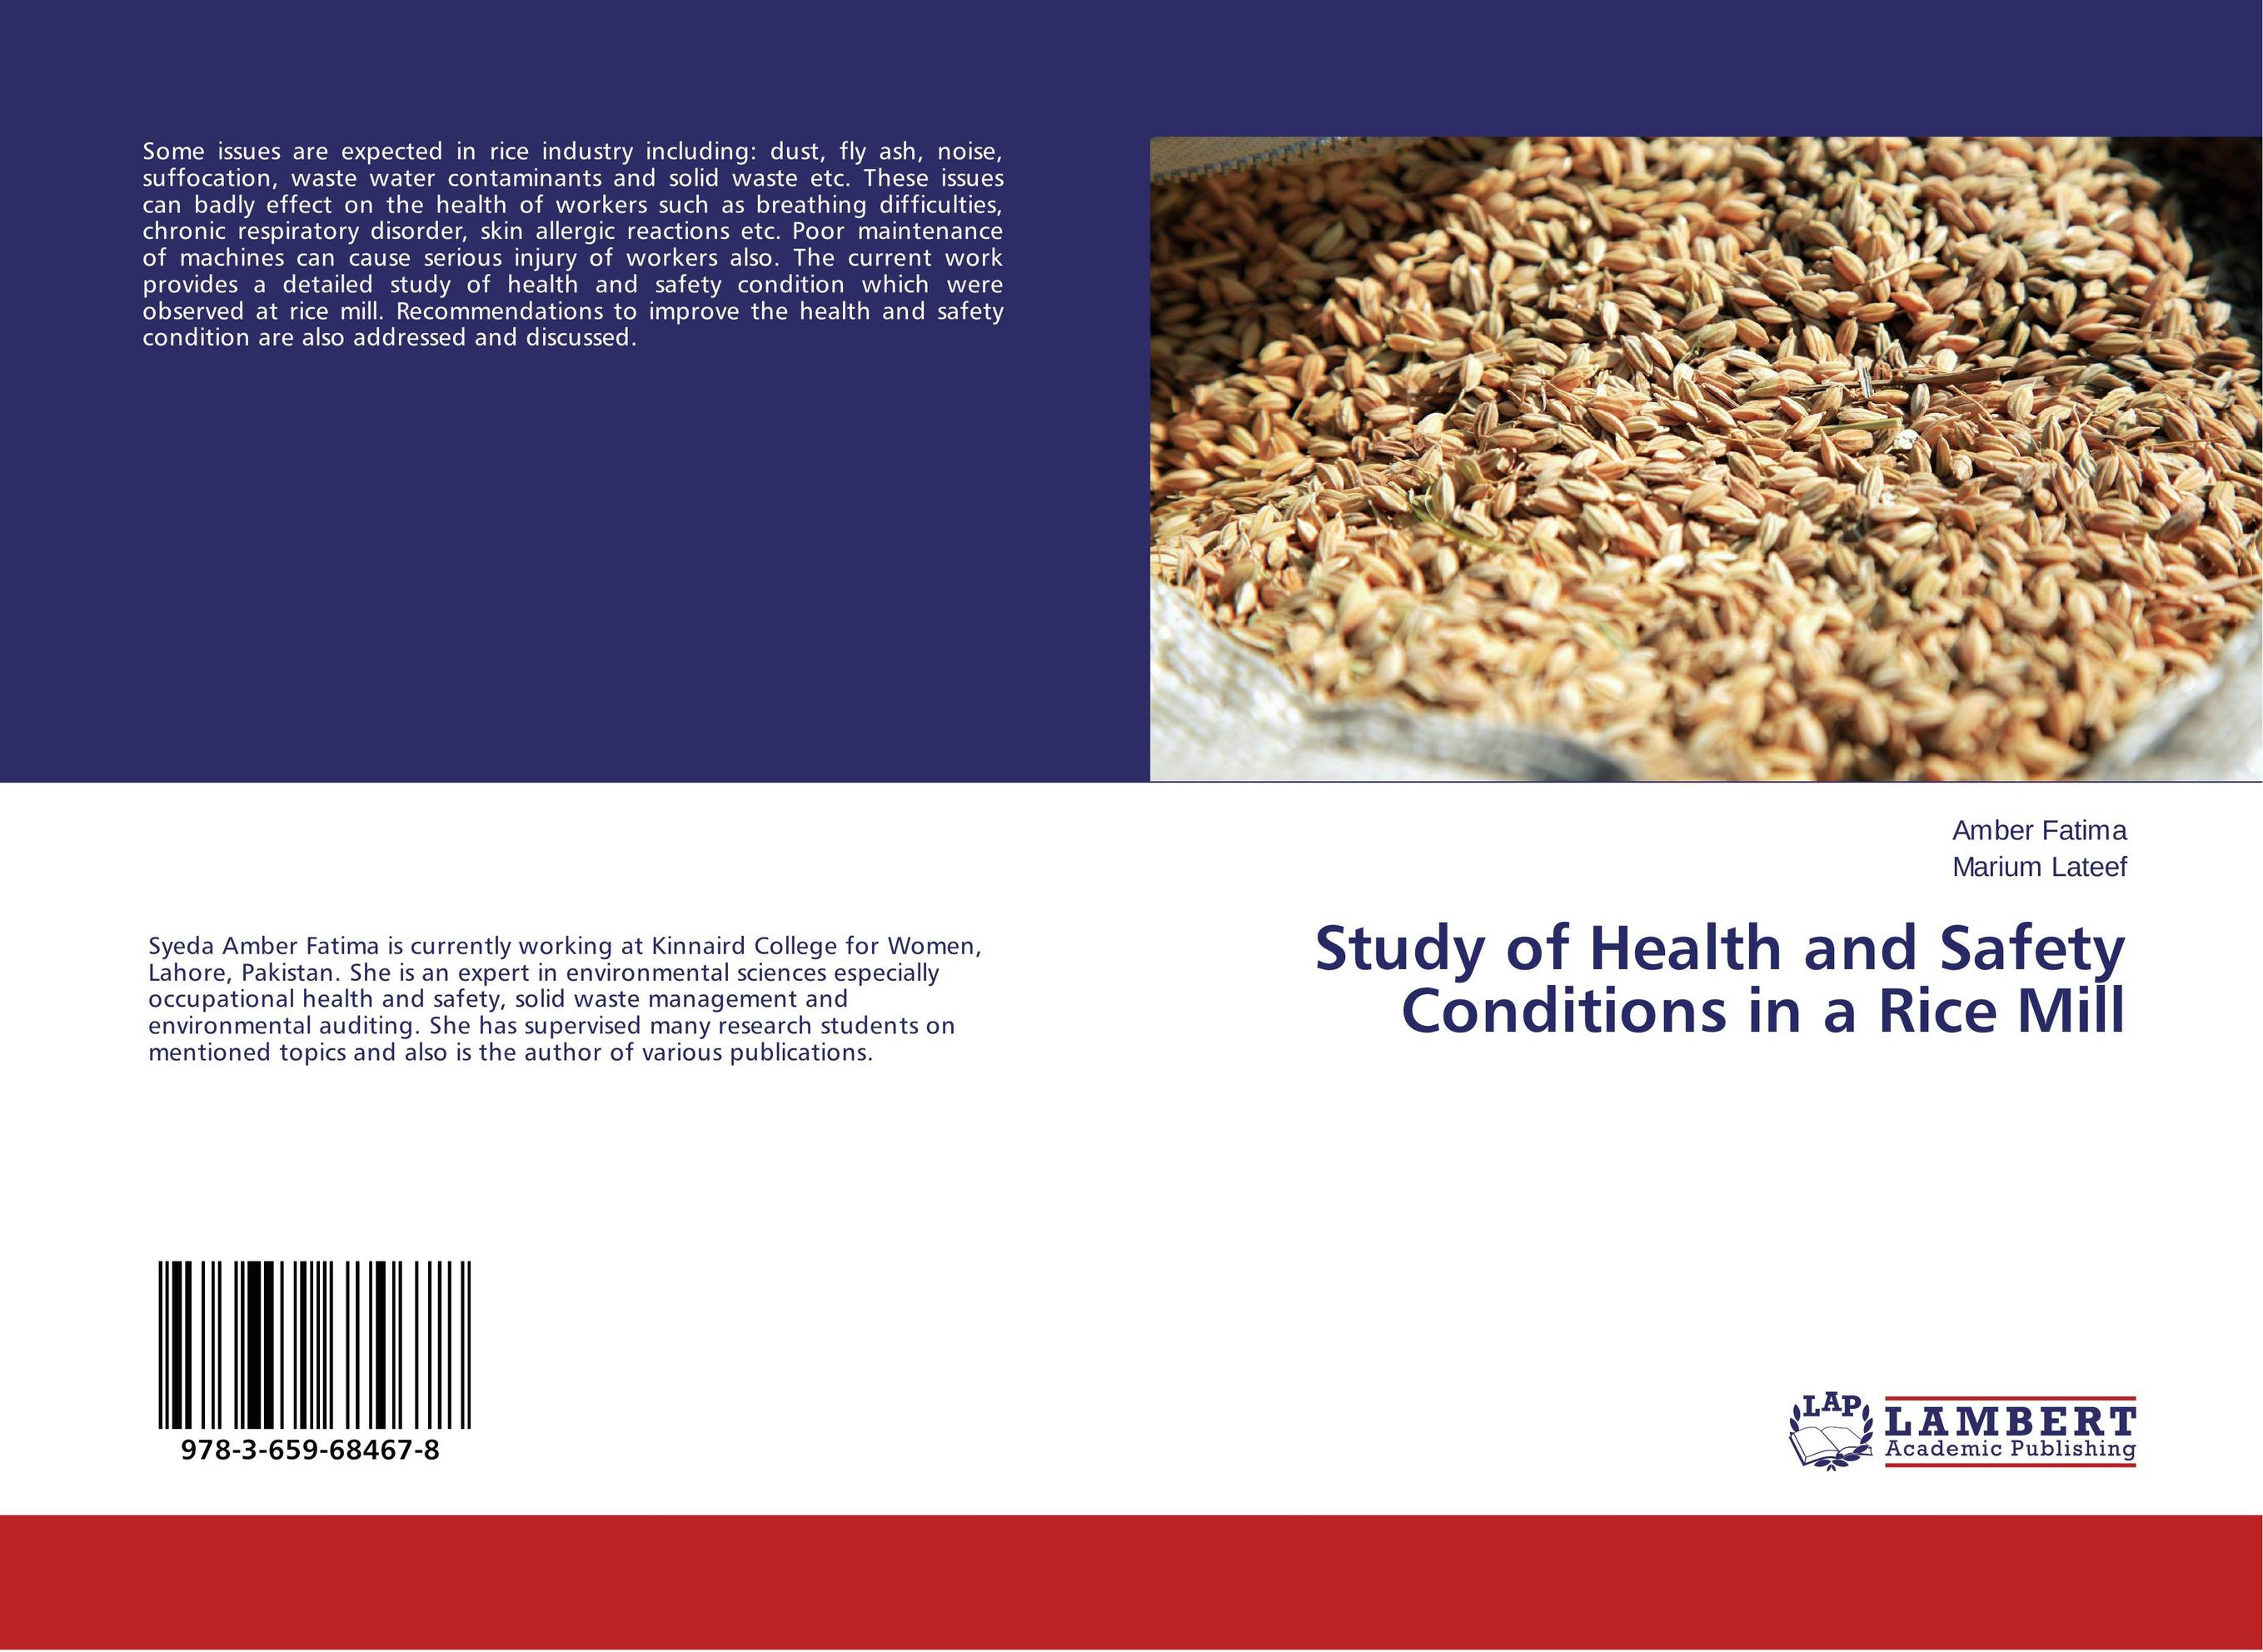 Study of Health and Safety Conditions in a Rice Mill